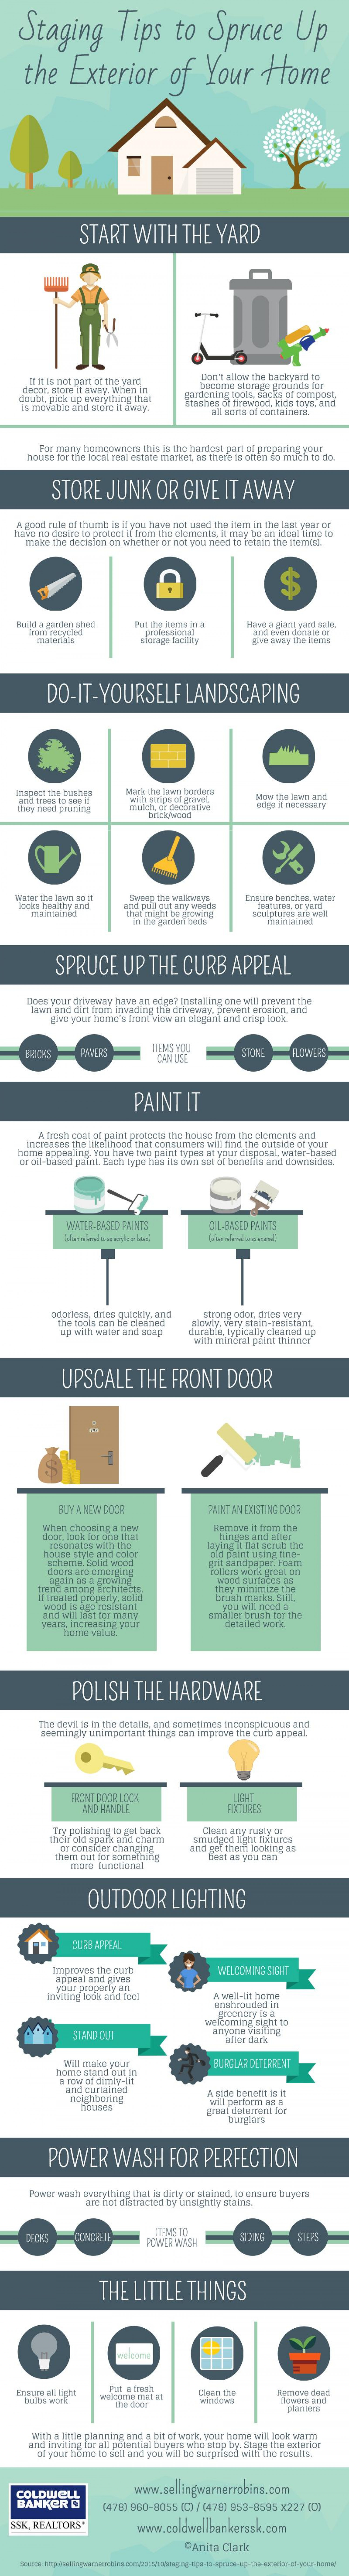 Staging Tips to Spruce Up the Exterior of Your Home Infographic